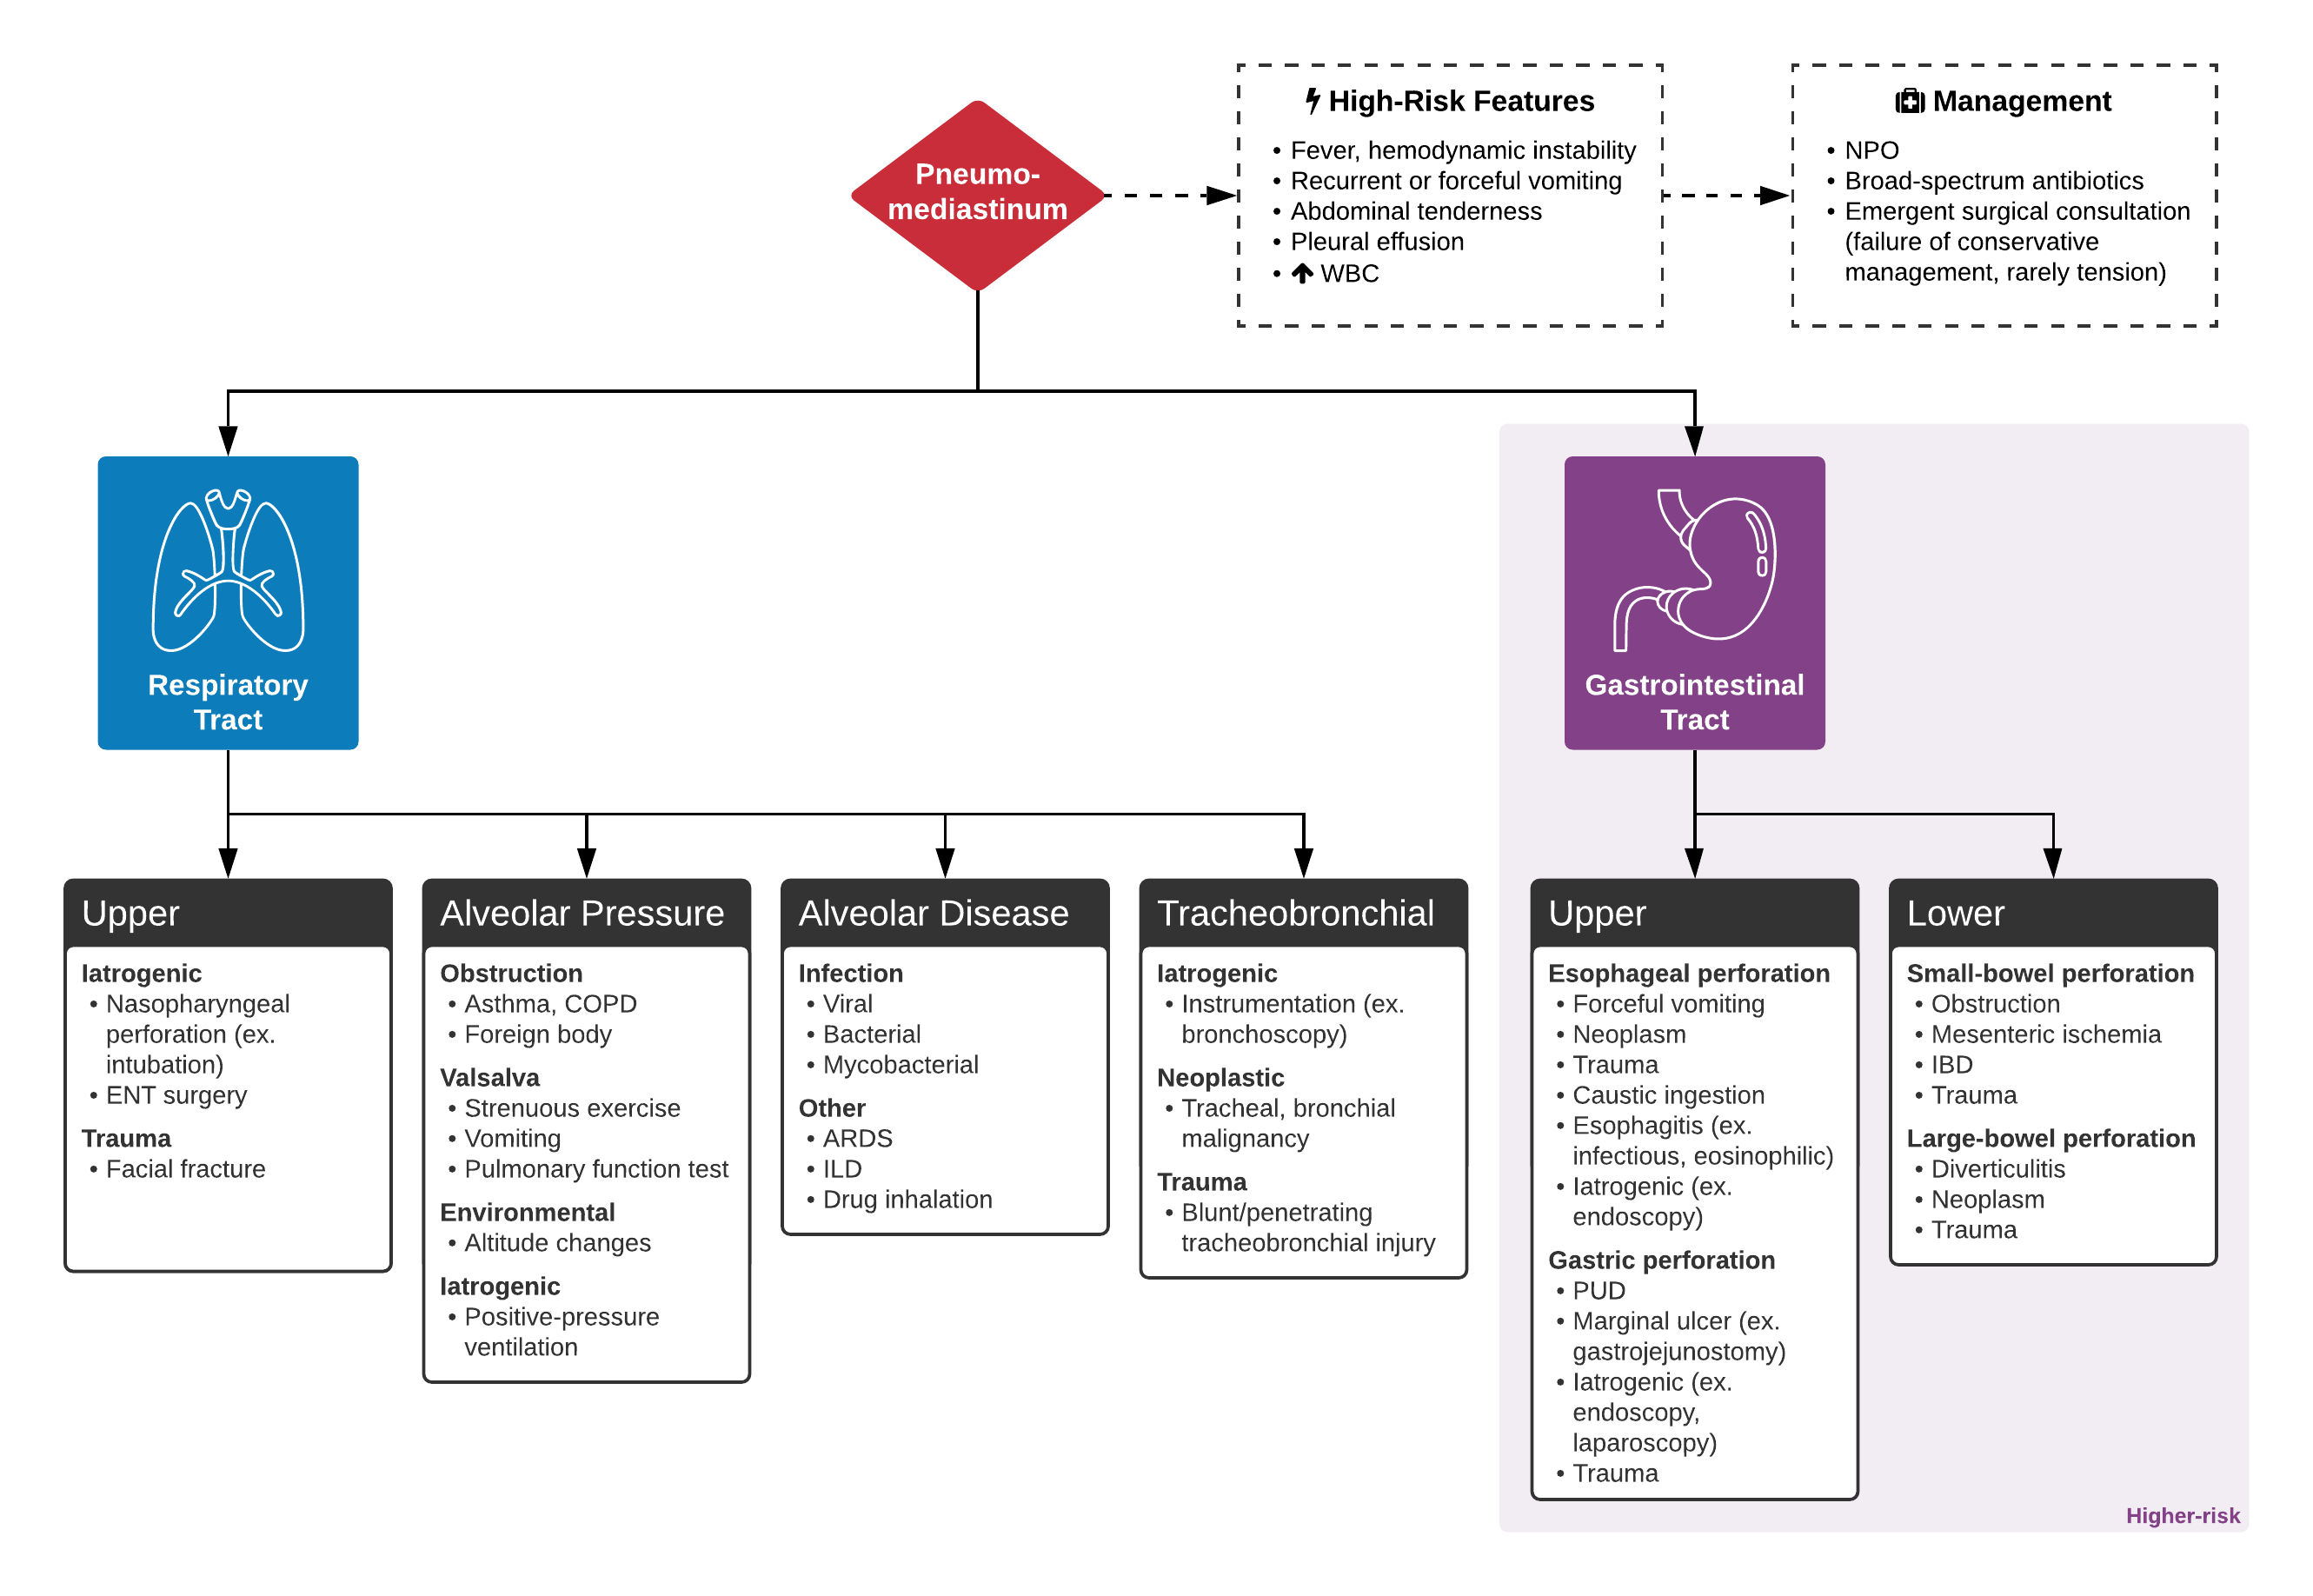 An Algorithm for the Evaluation of Pneumomediastinum